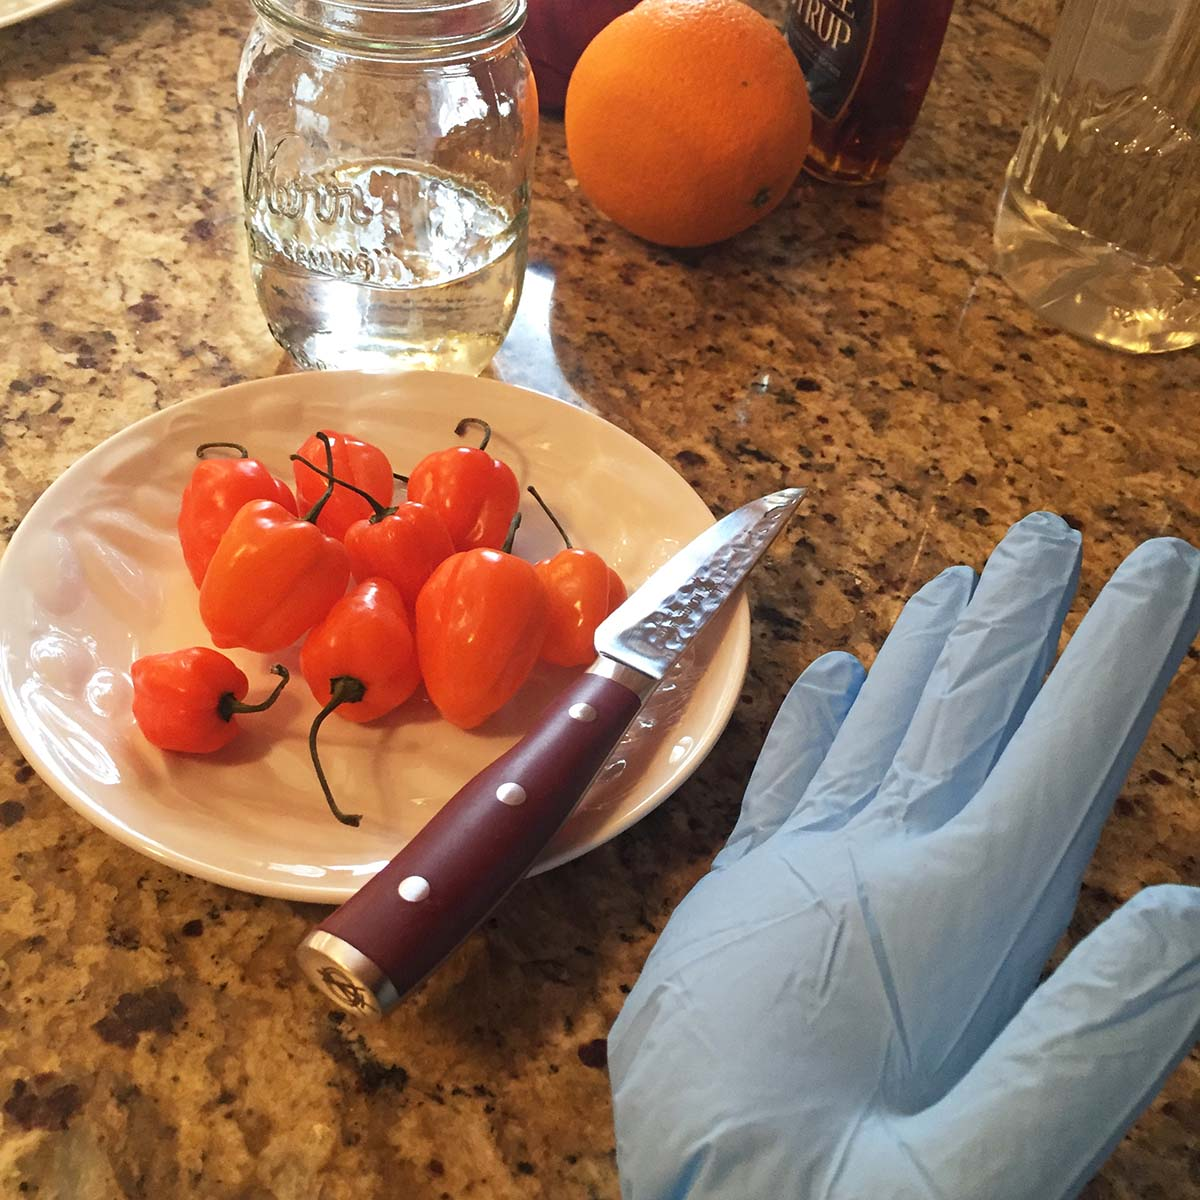 habanero plate with glove